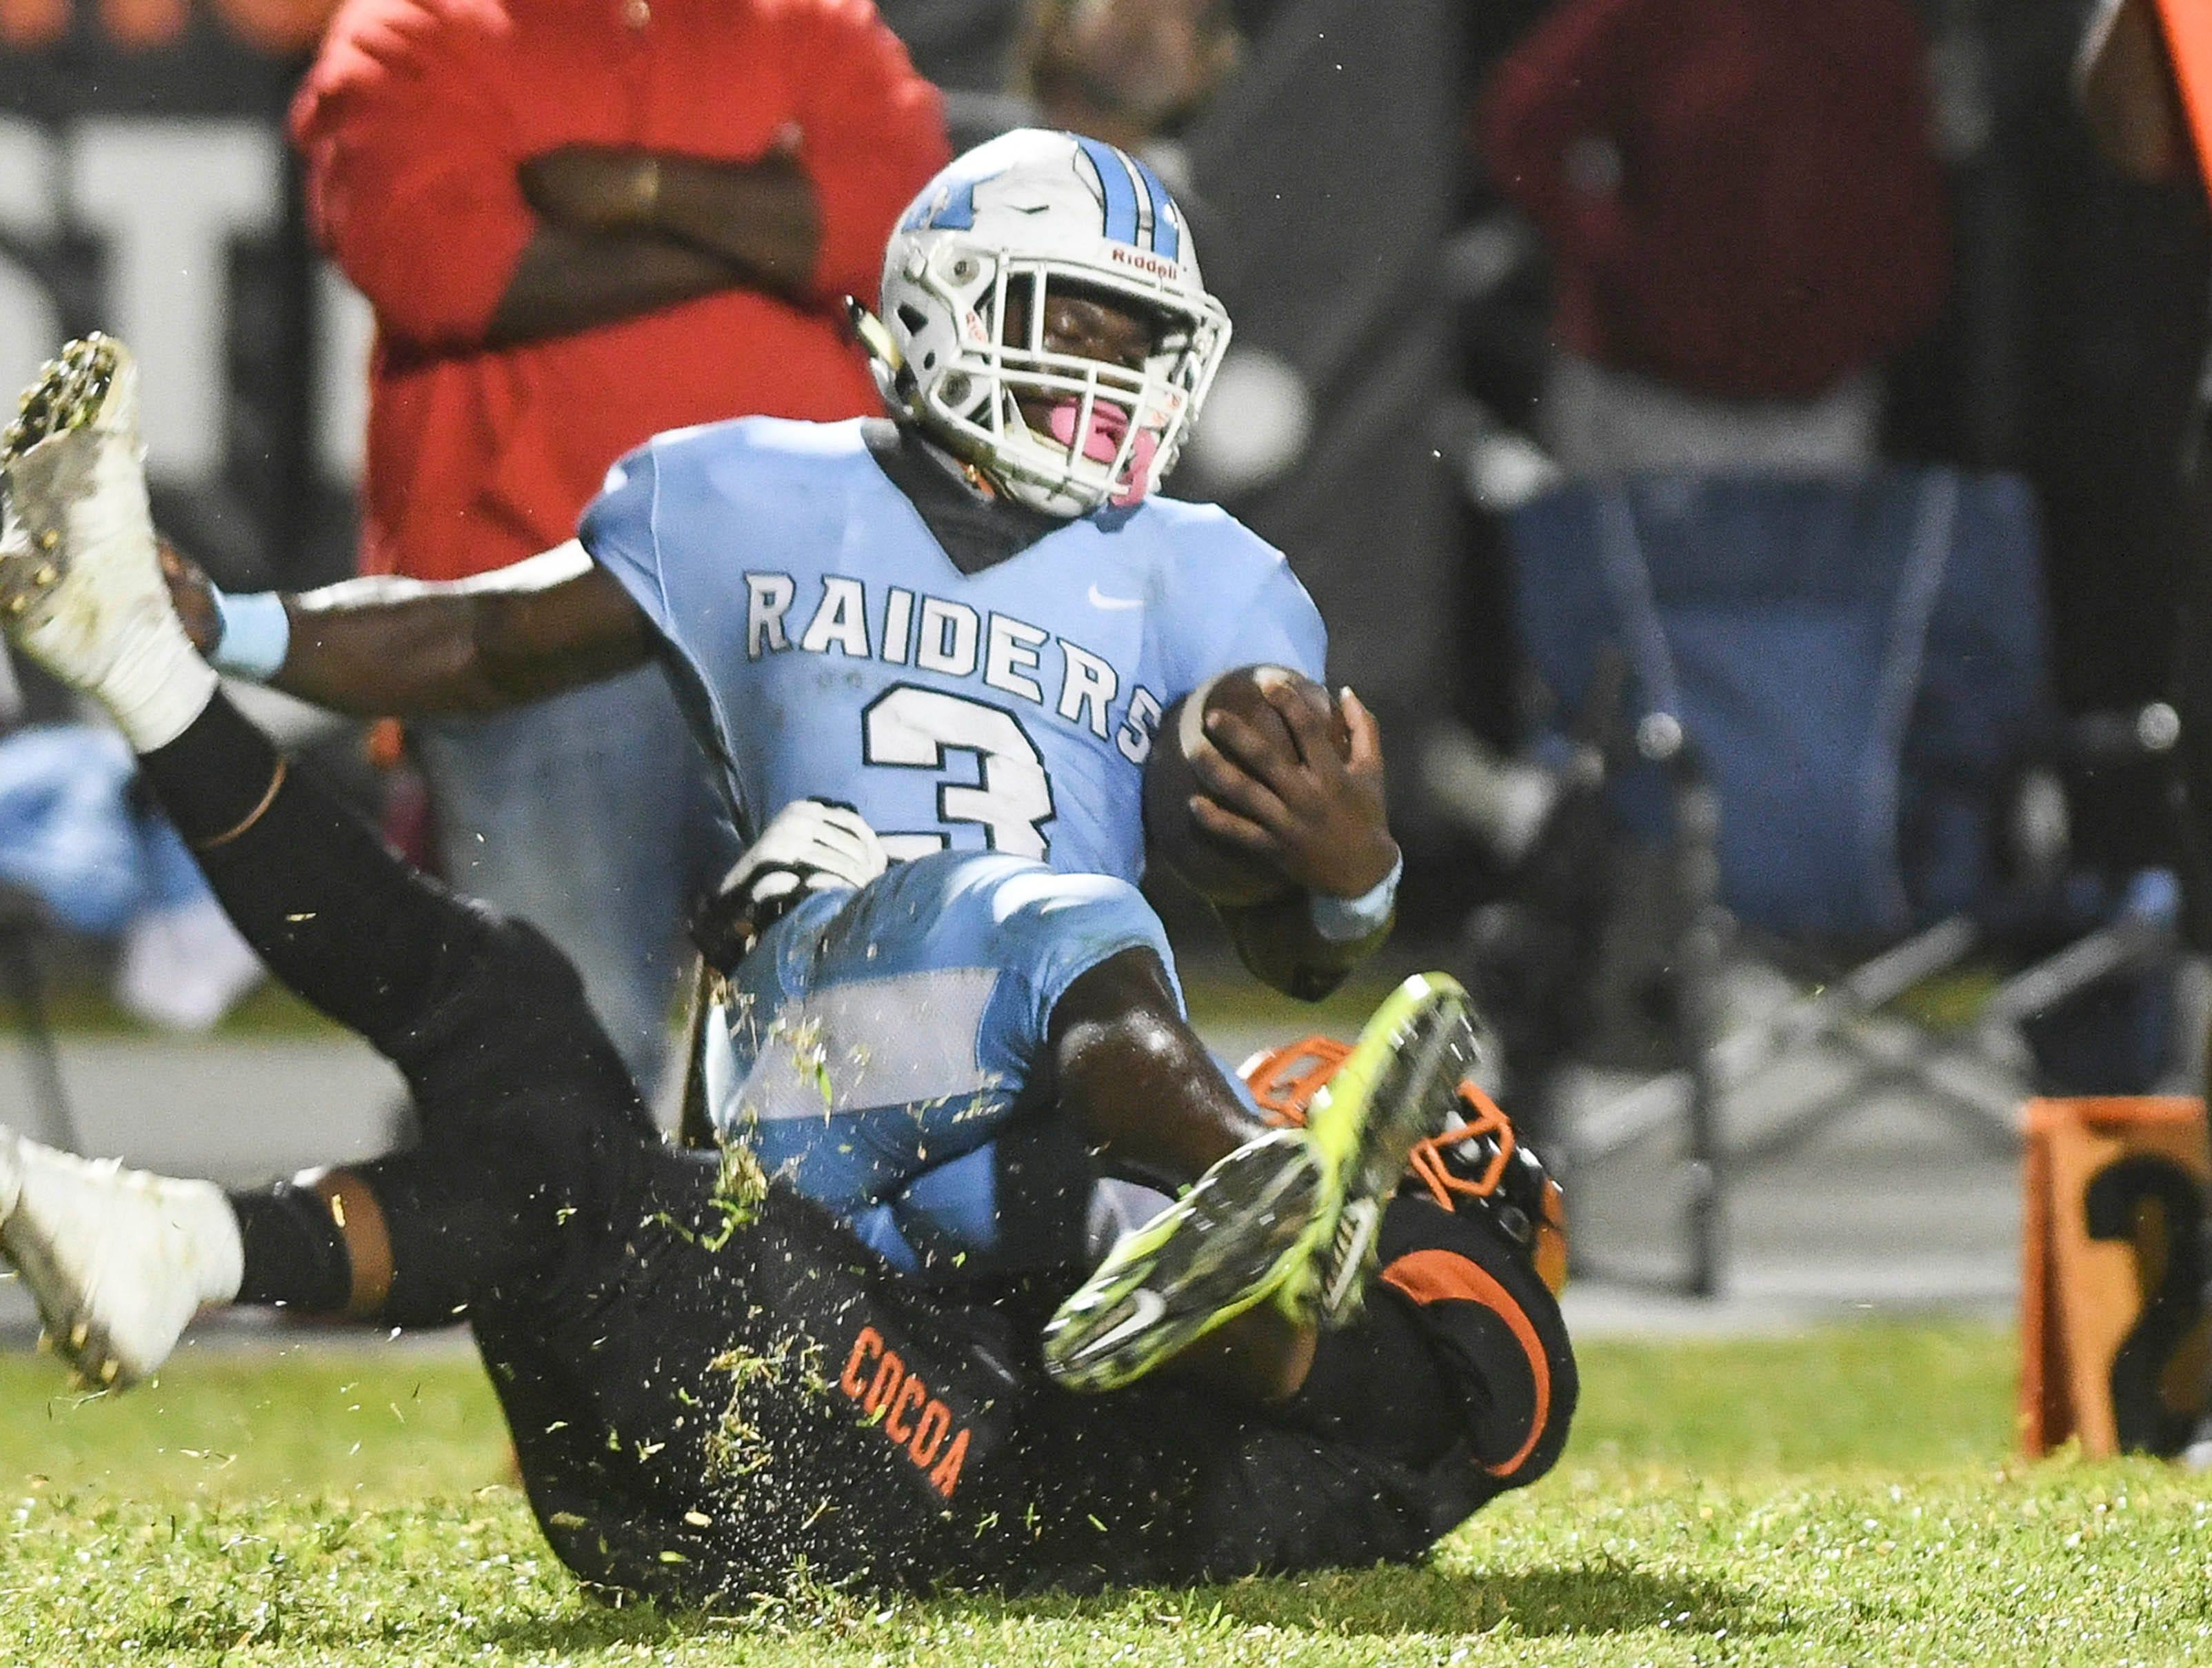 Rockledge's Ladarius Tennison is brought down by Ja'von Wade oc cocoaduring their game Friday